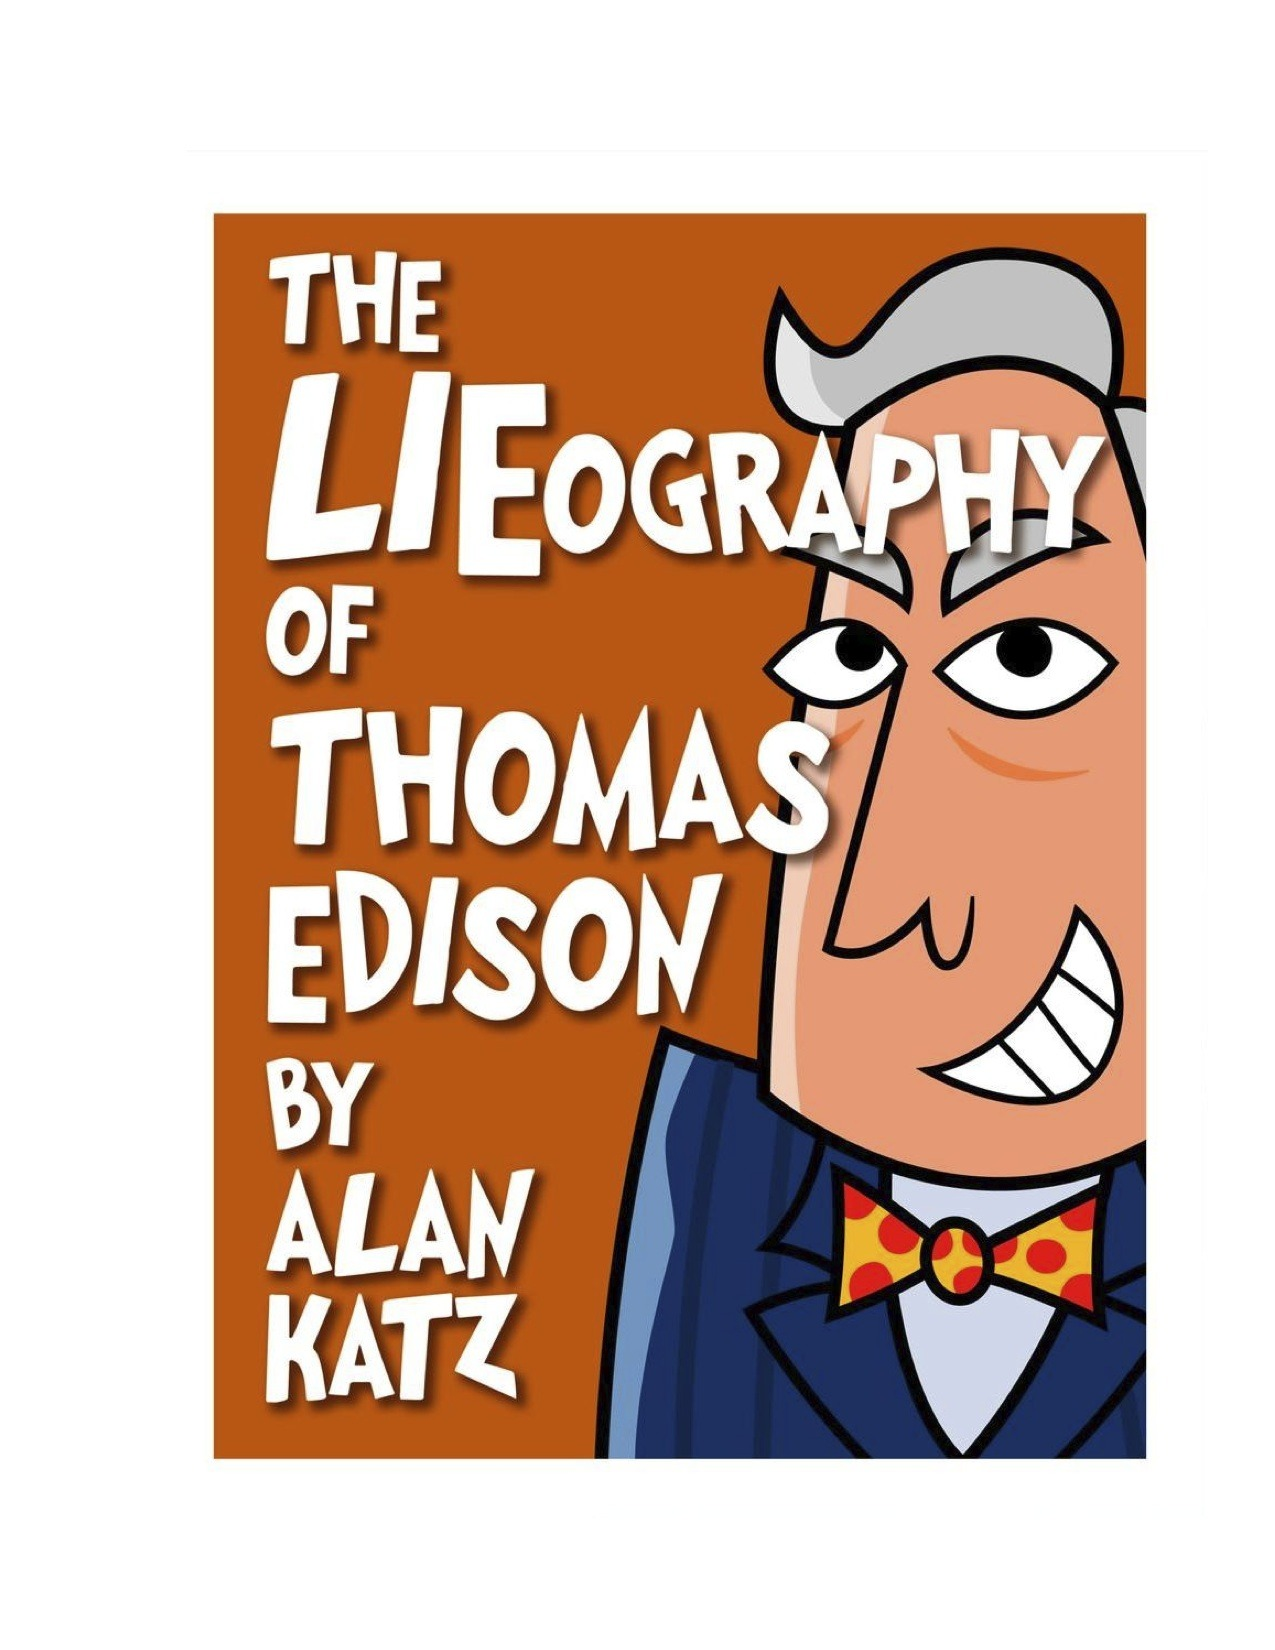 Joey Ahlbum designed this awesome cover for Alan Katz's new book, The Lieography of Thomas Edison.  You can e-buy the e-book at all e-major e-retailers on May 14th.  Fun fact:  Edison's bowties always matched his undies.